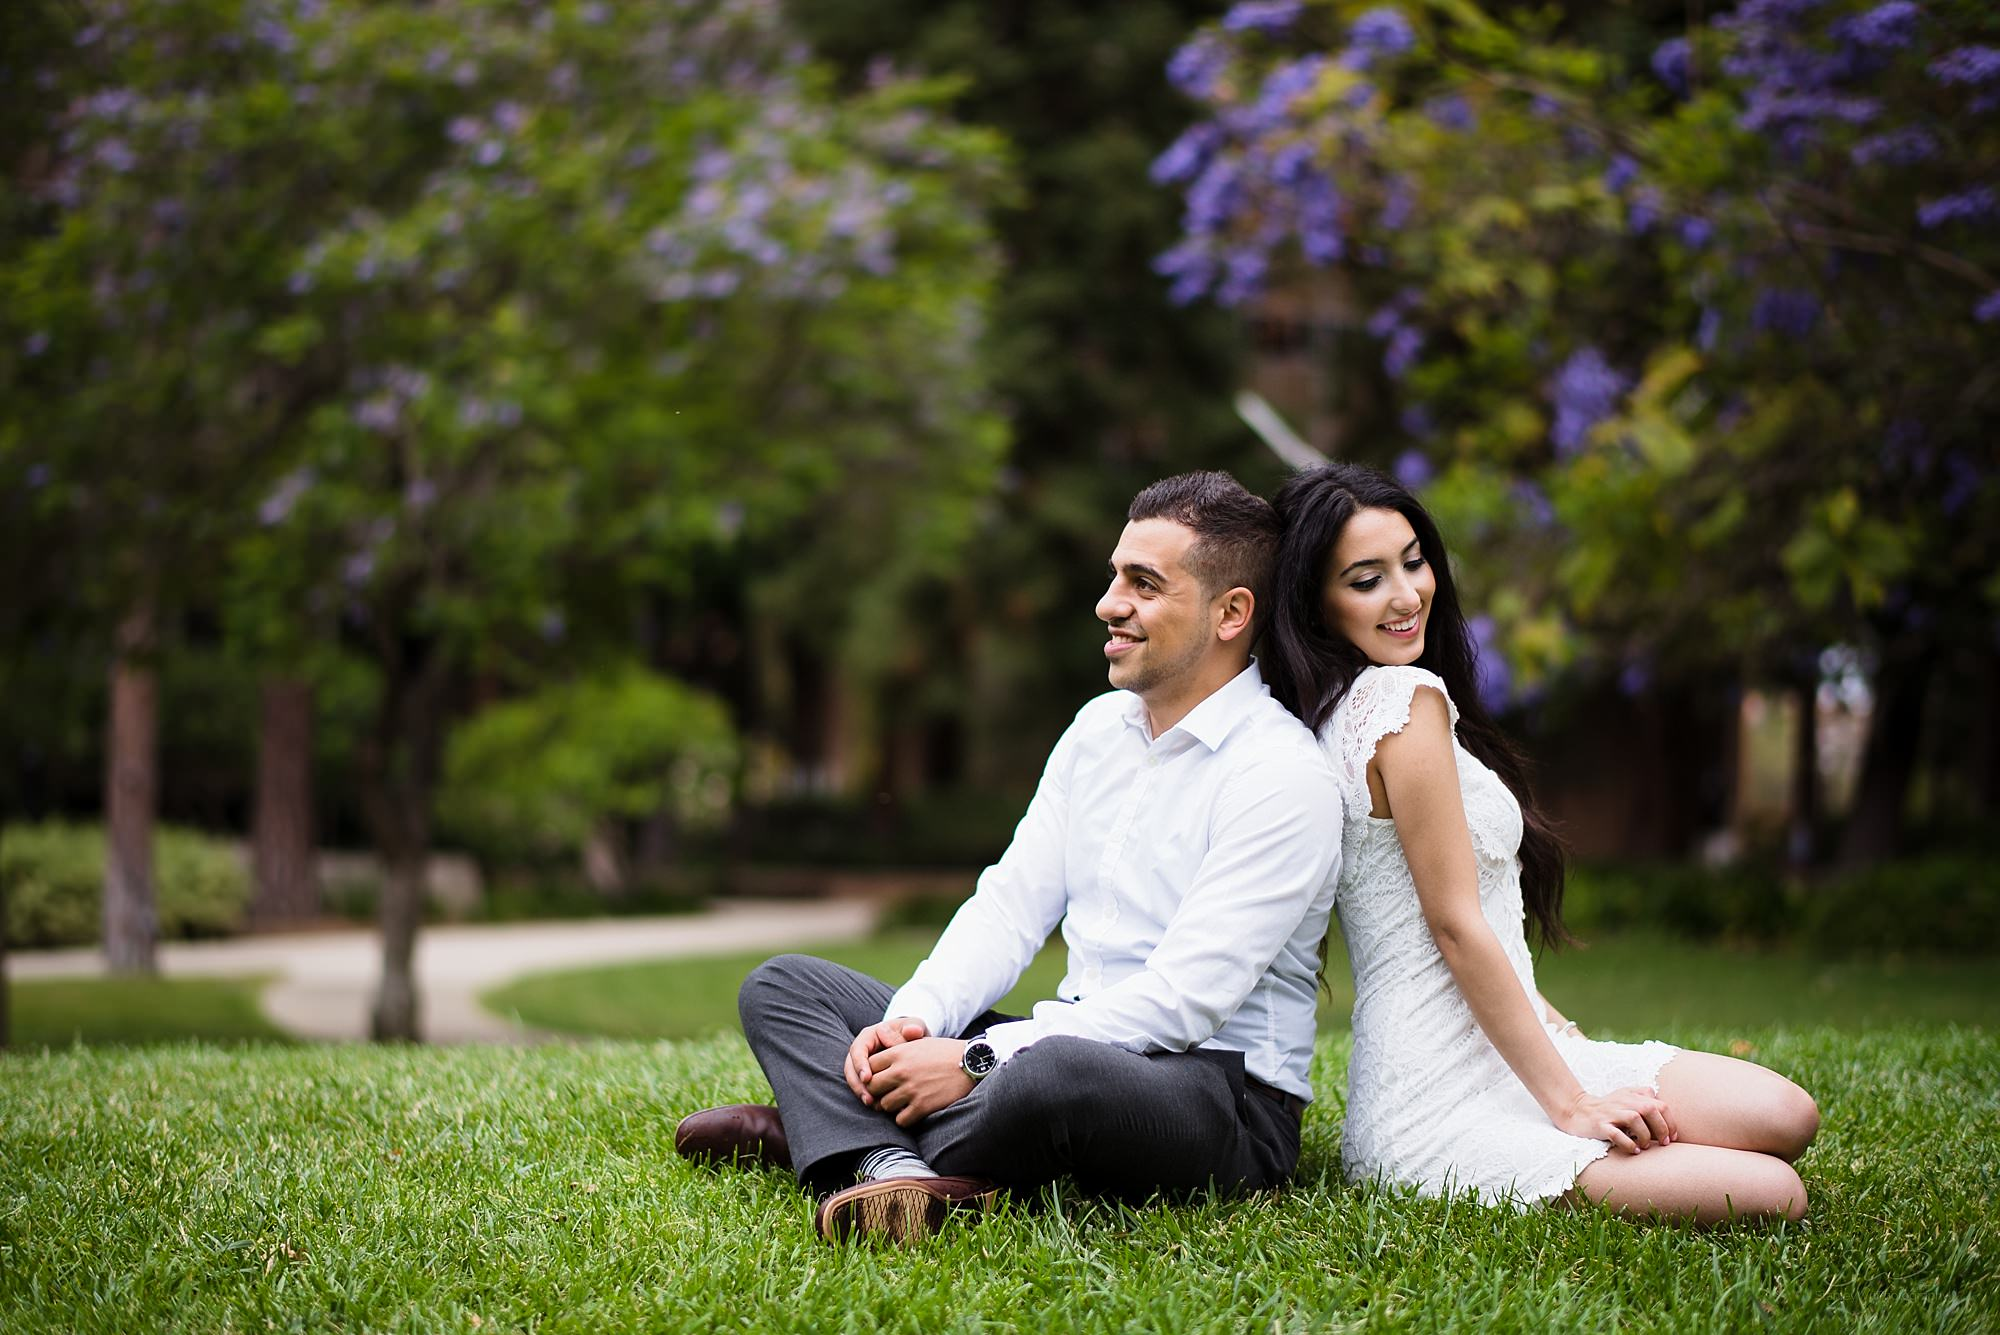 beautiful graduation senior portrait of a middle-eastern couple in love at ucla in los angeles